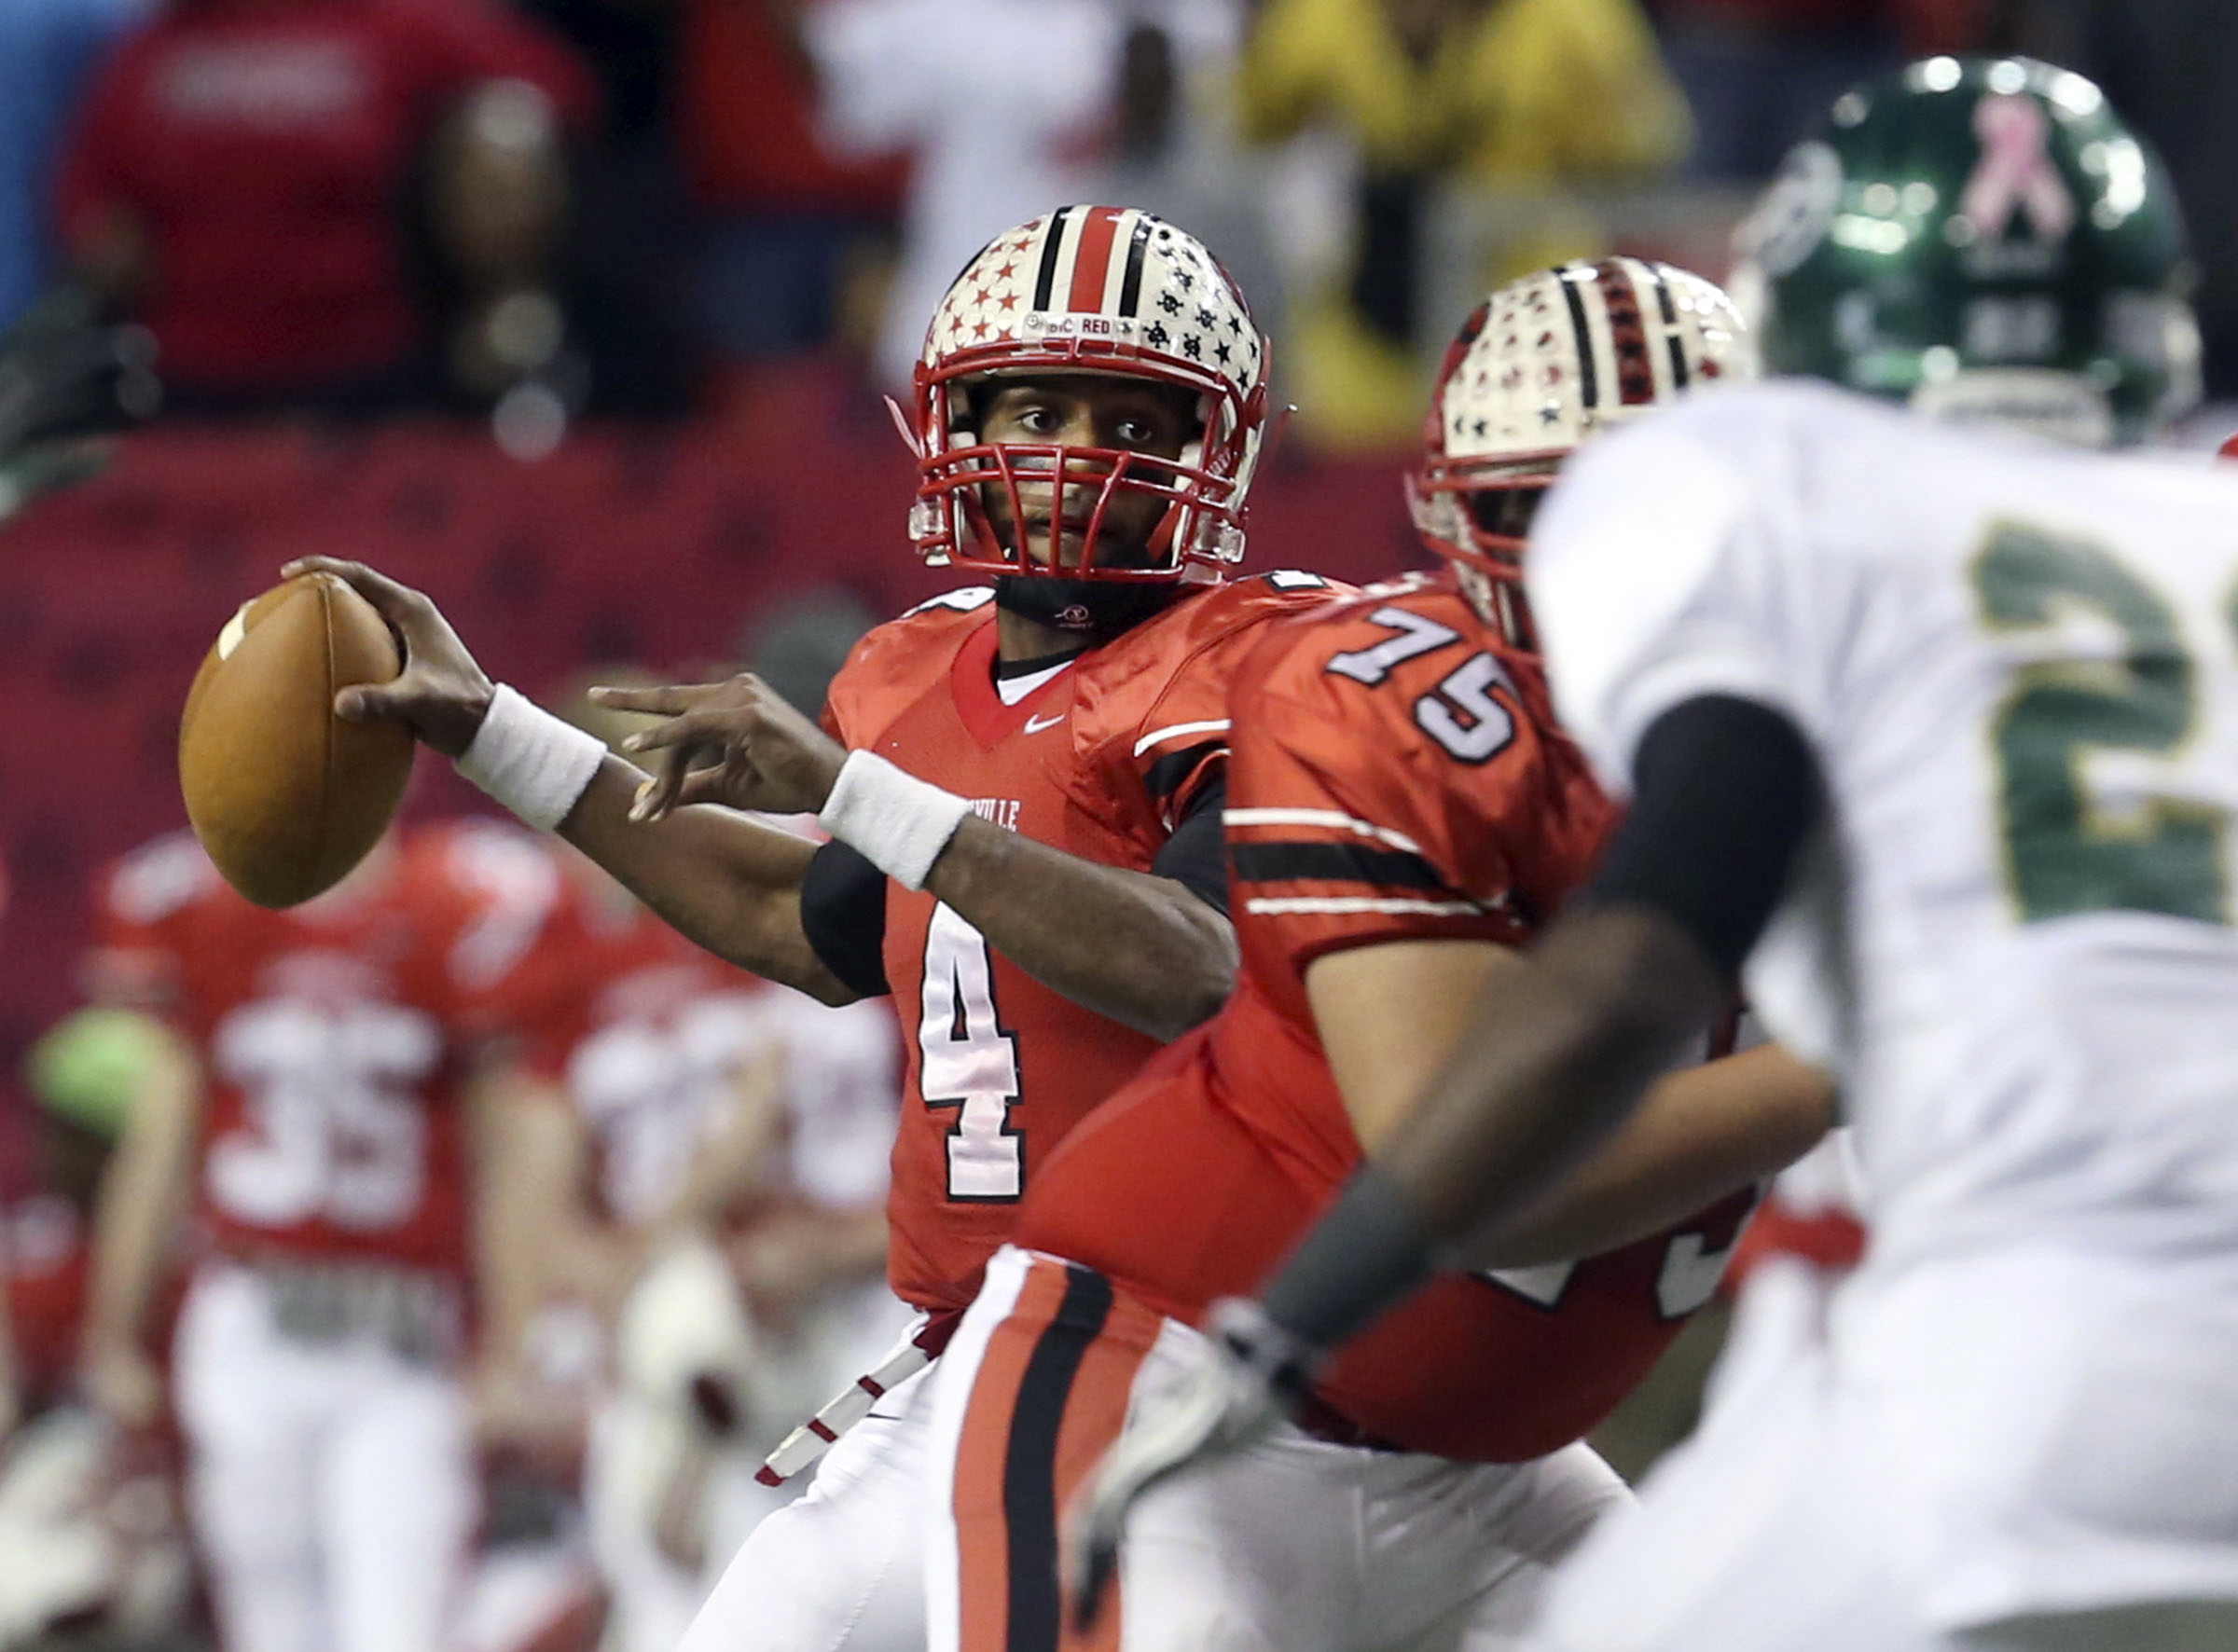 Gainesville quarterback Deshaun Watson (4) attempts a pass against Ware County in the Georgia AAAAA title game in 2012. (Jason Getz, Atlanta Journal-Constitution via The Associated Press)